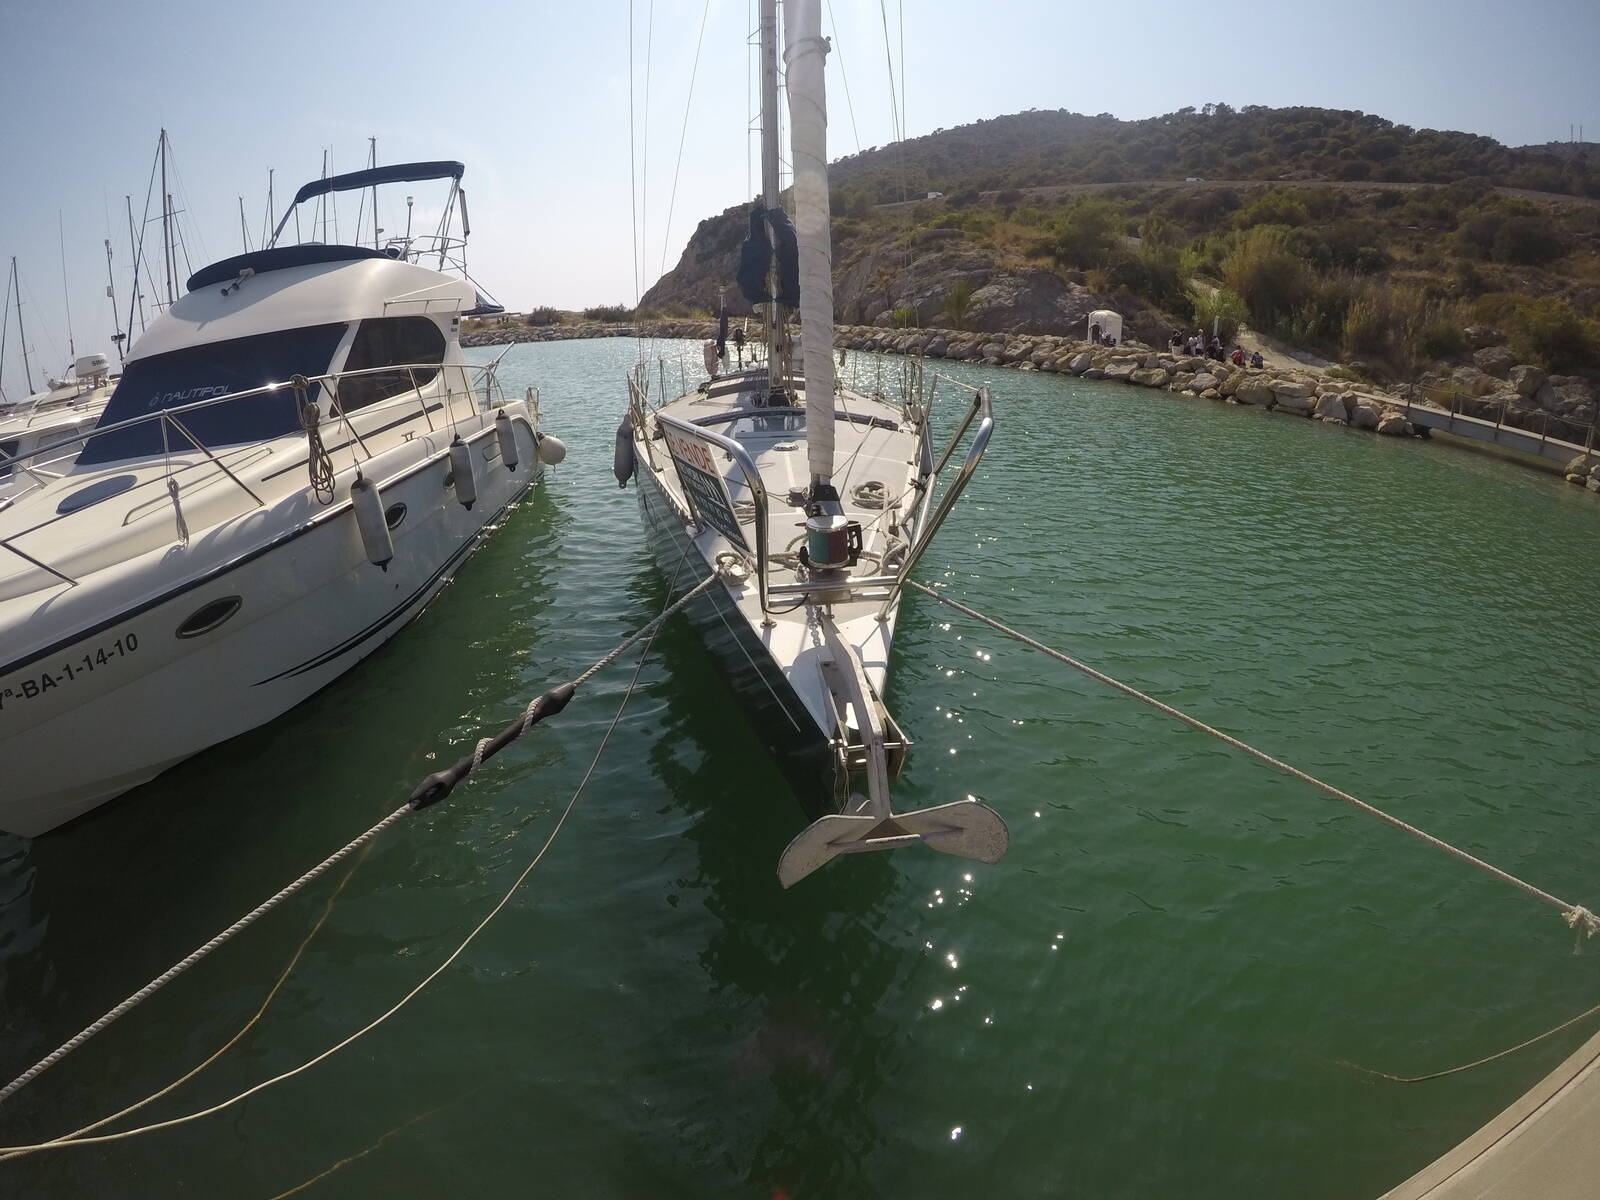 Ansa 42 Sailing Yacht from bow